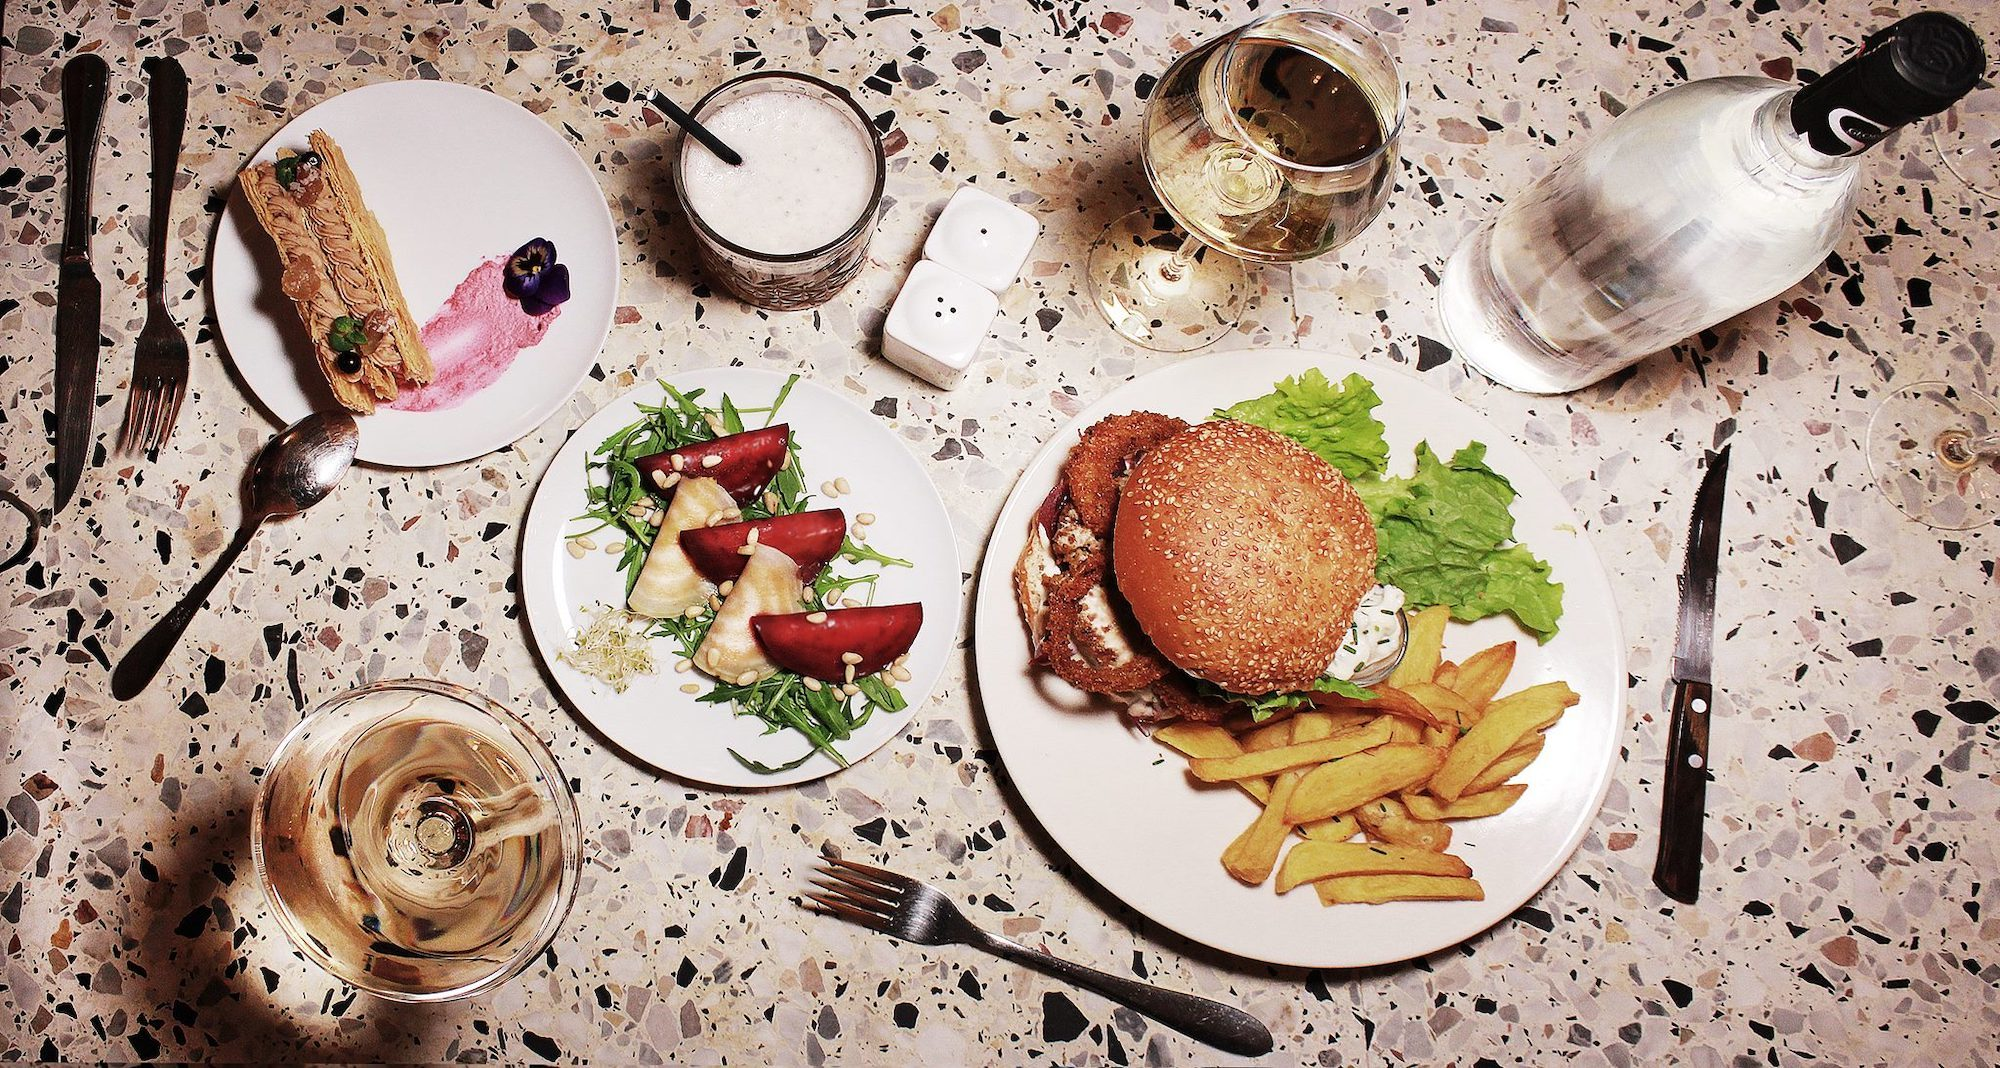 A spread of vegan burger with homemade fries and a starter of beetroot on a terrazzo table at BrEAThe restaurant in Paris.